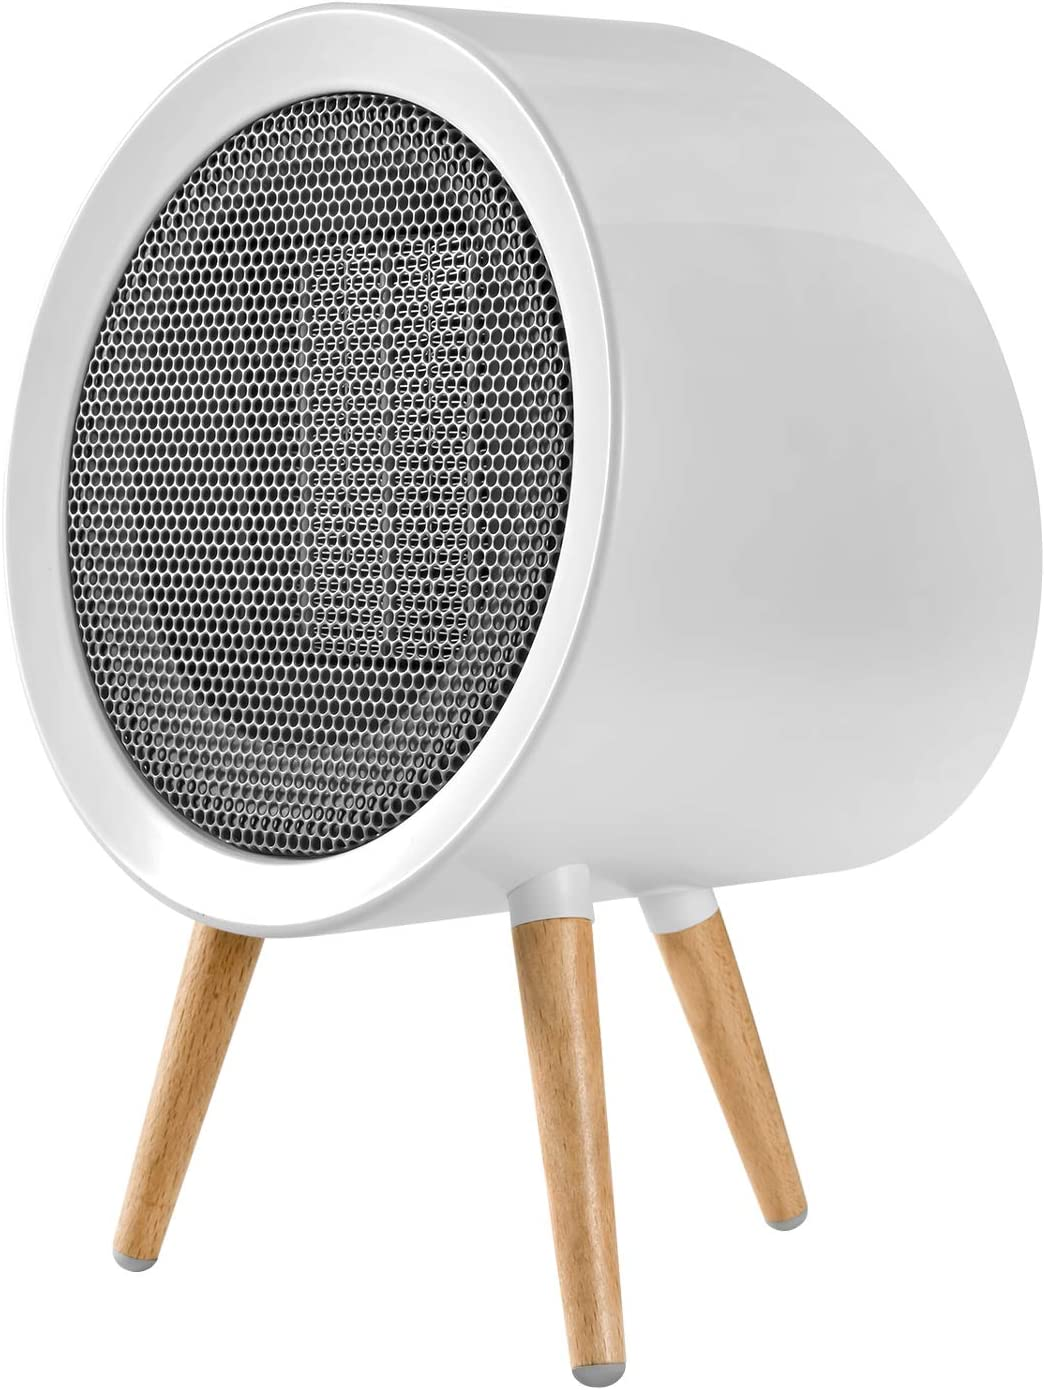 Portable Ceramic Space Heater, Energy Efficient Small Space Heater for Bedroom Electric Space Heater Replacement Parts for Office and Home